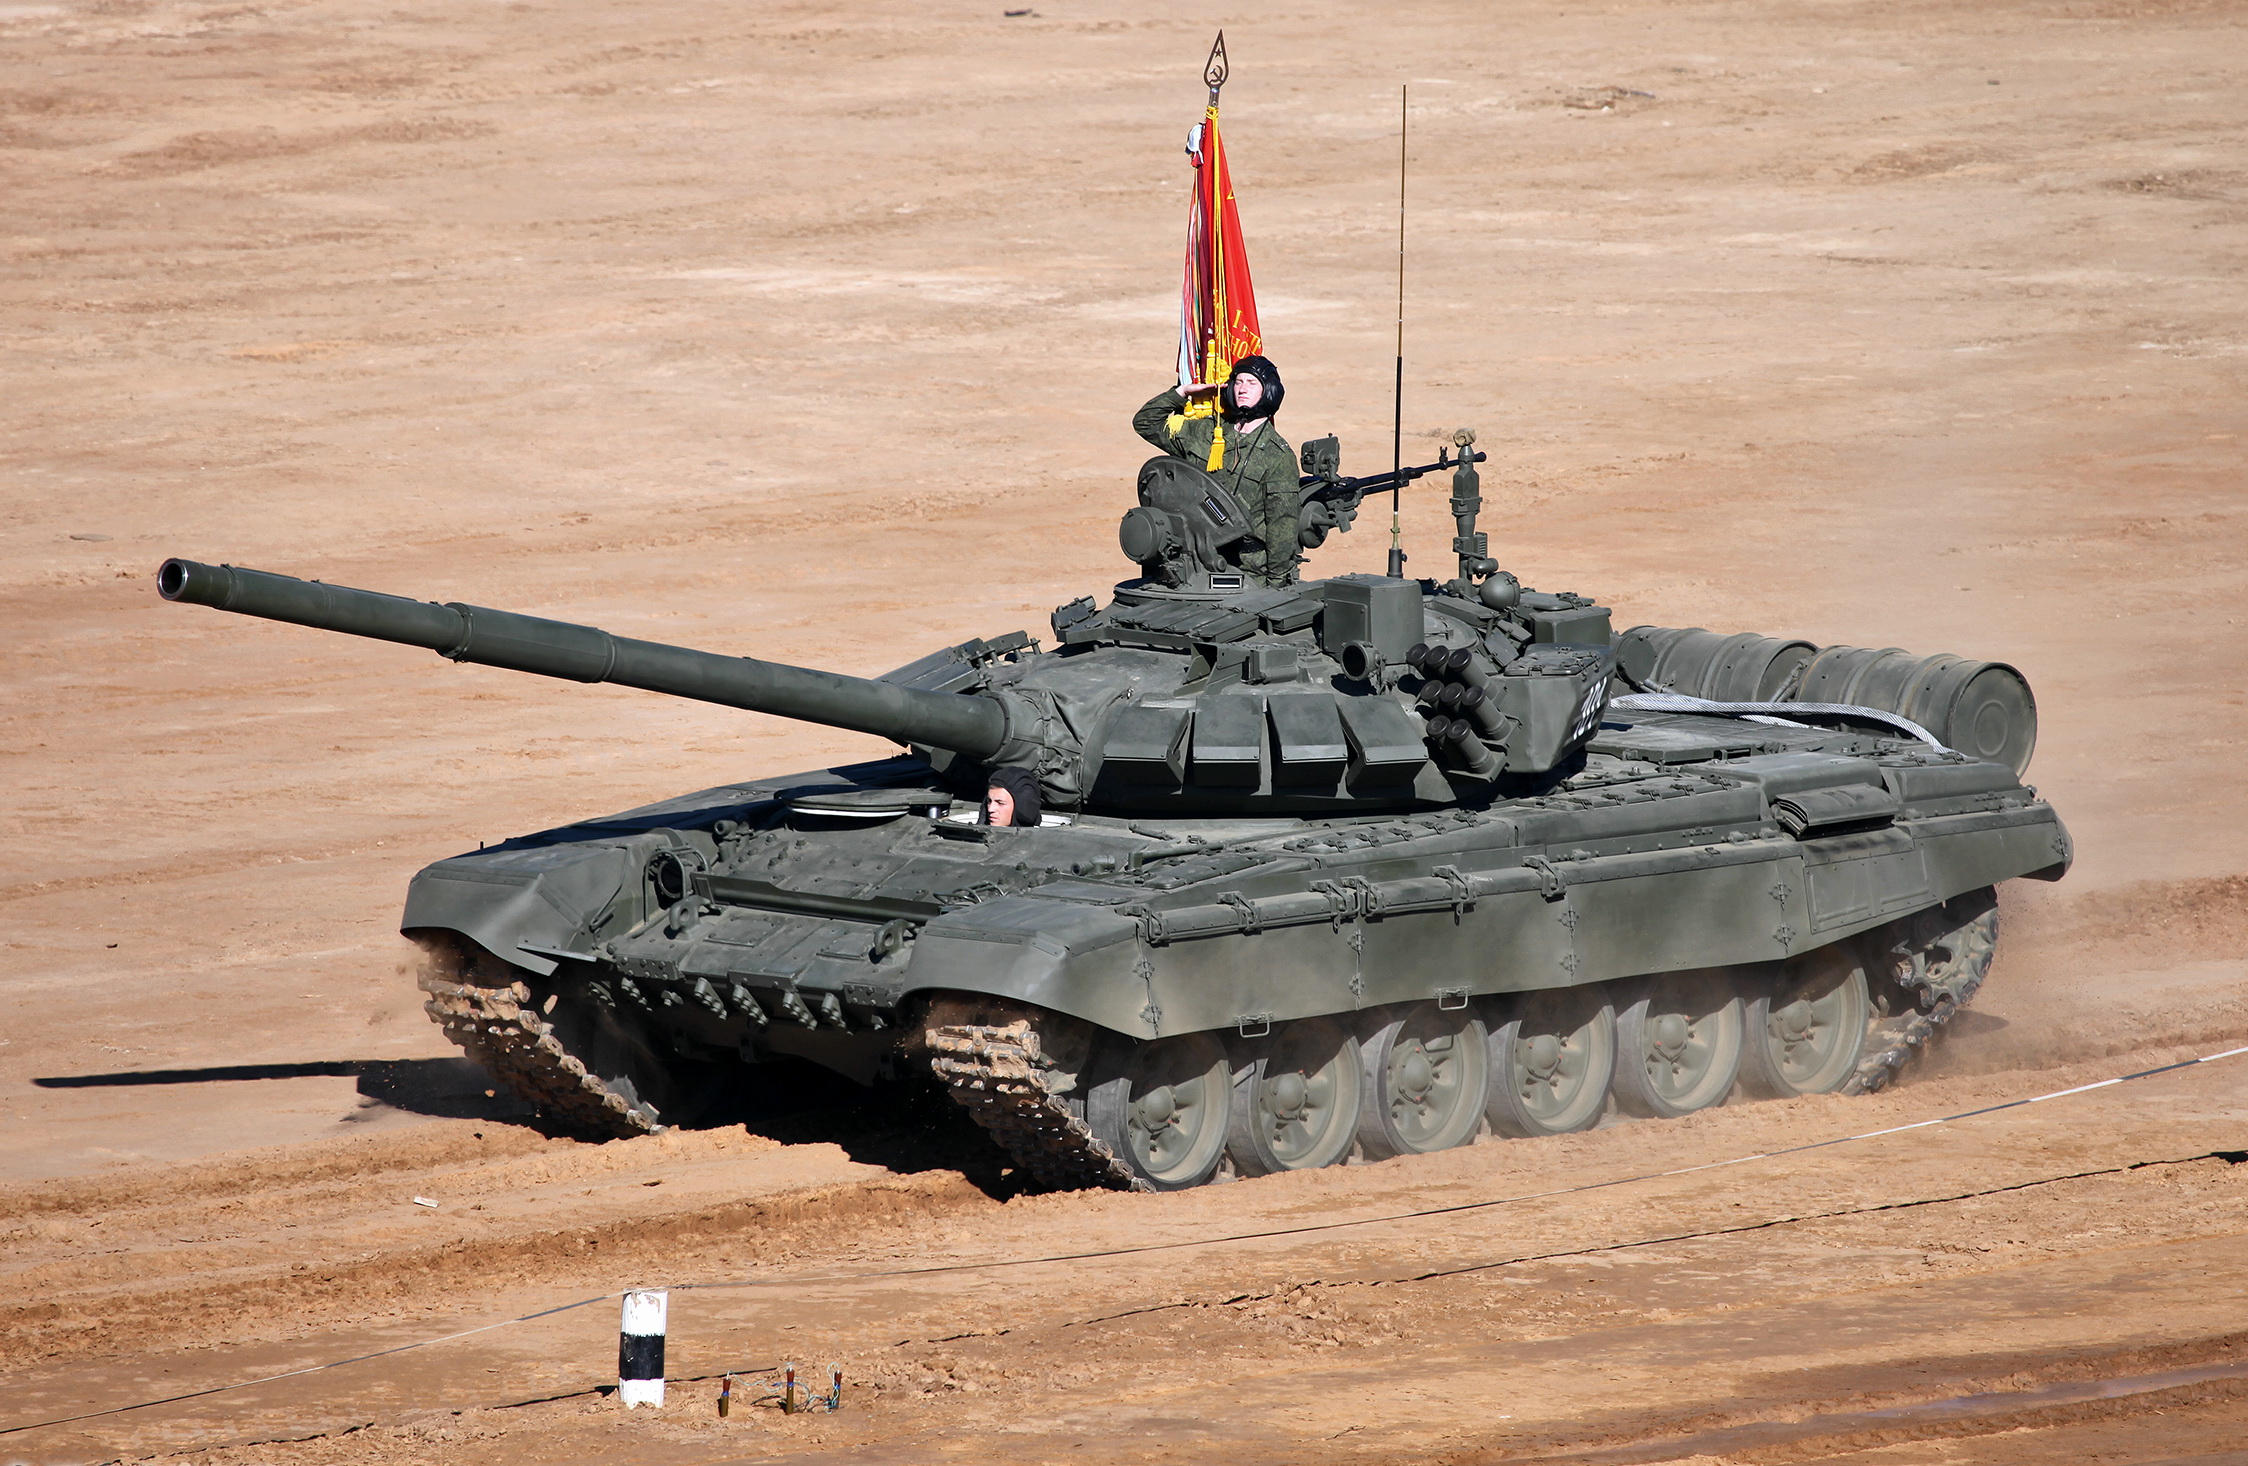 Russian T-72B Main Battle Tank in 2013. Russian Ministry of Defence Photo